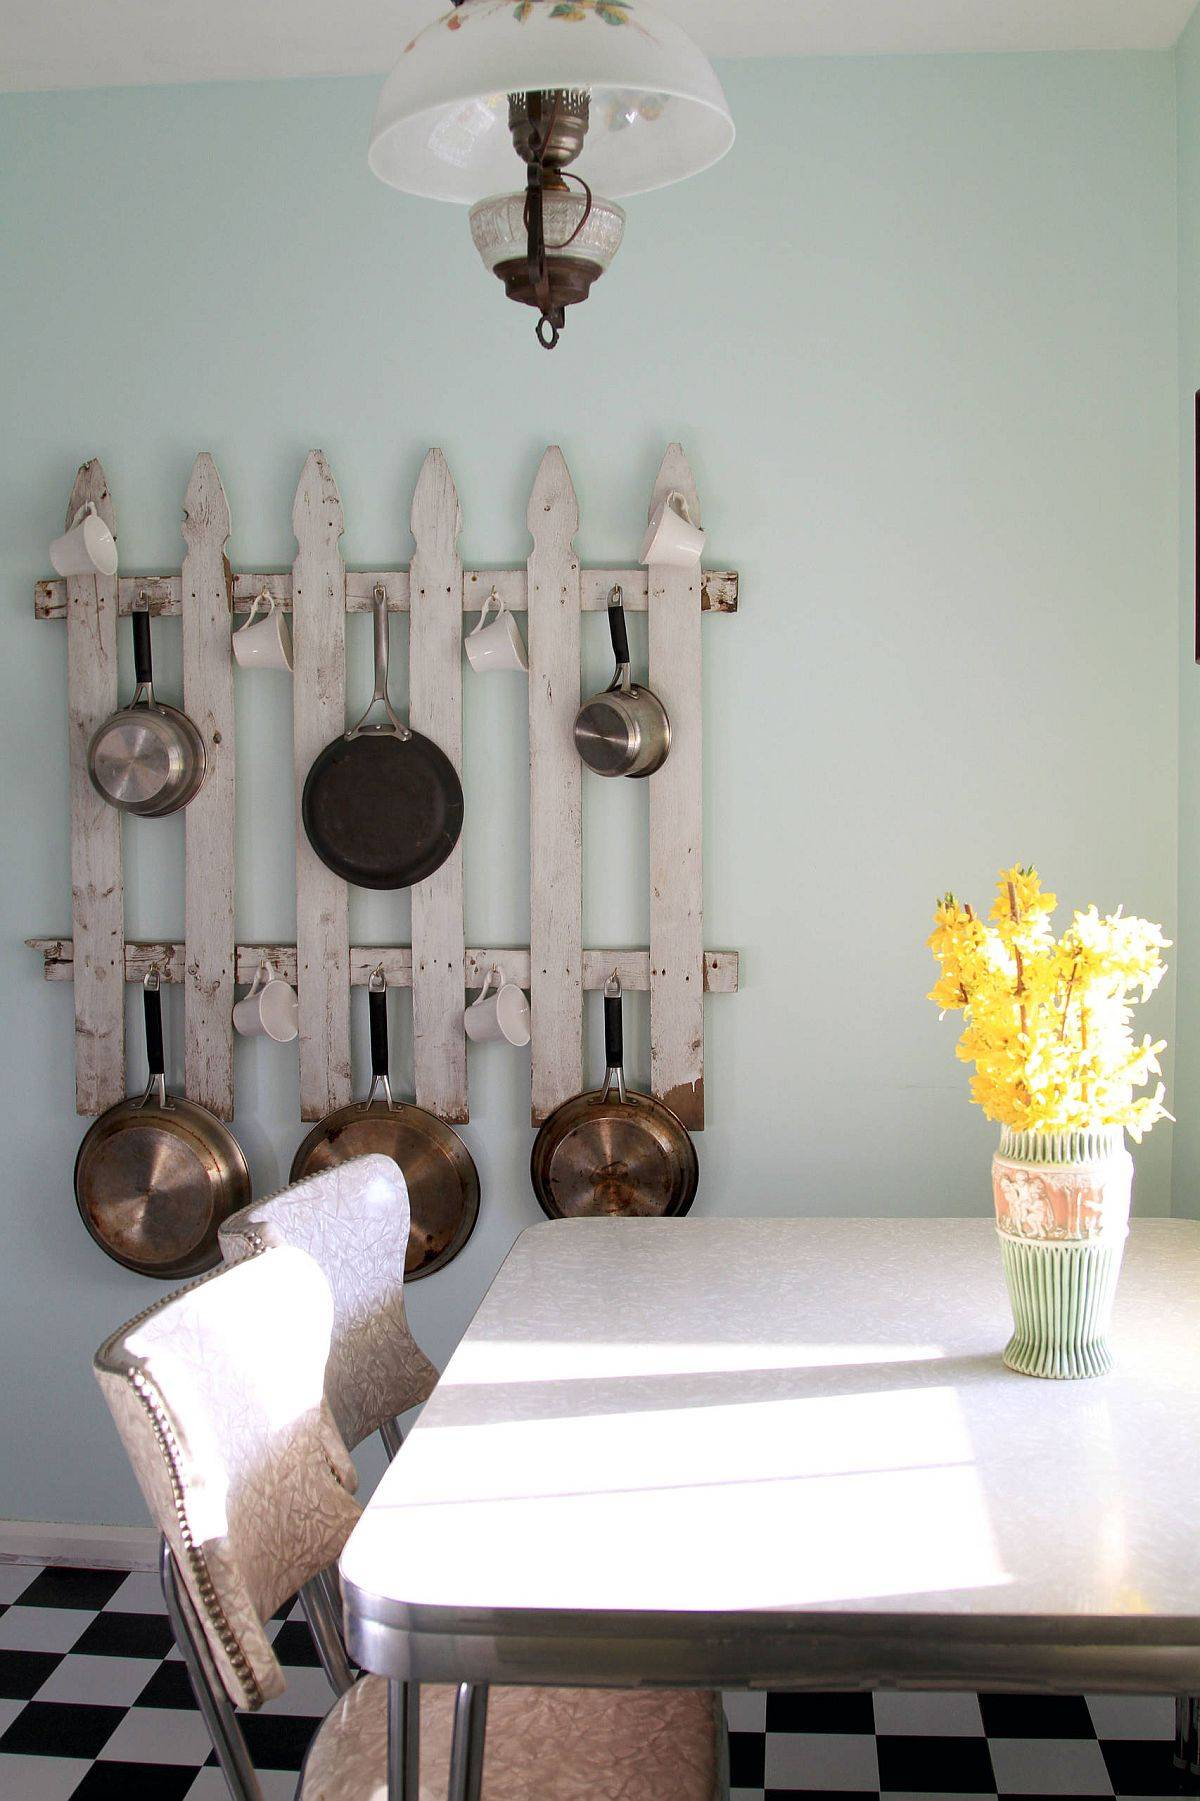 Find your own innovative pot rack in the kitchen that goes beyond the mundane